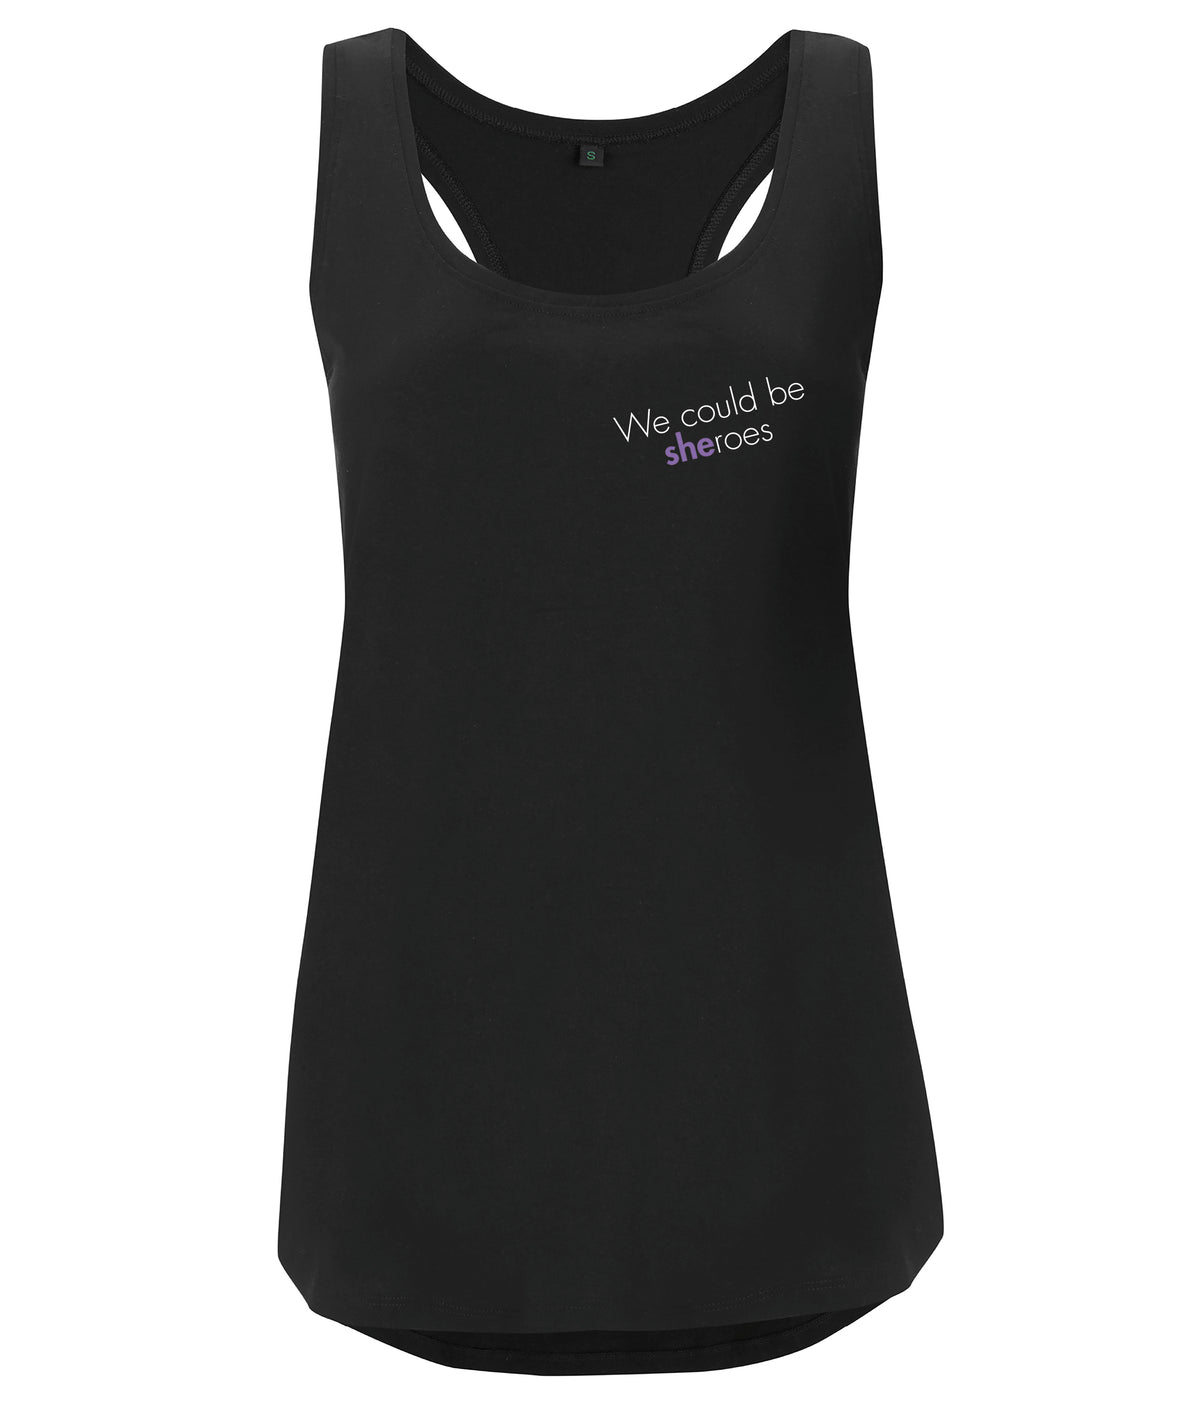 We Could Be Sheroes Organic Feminist Racerback Vest Black